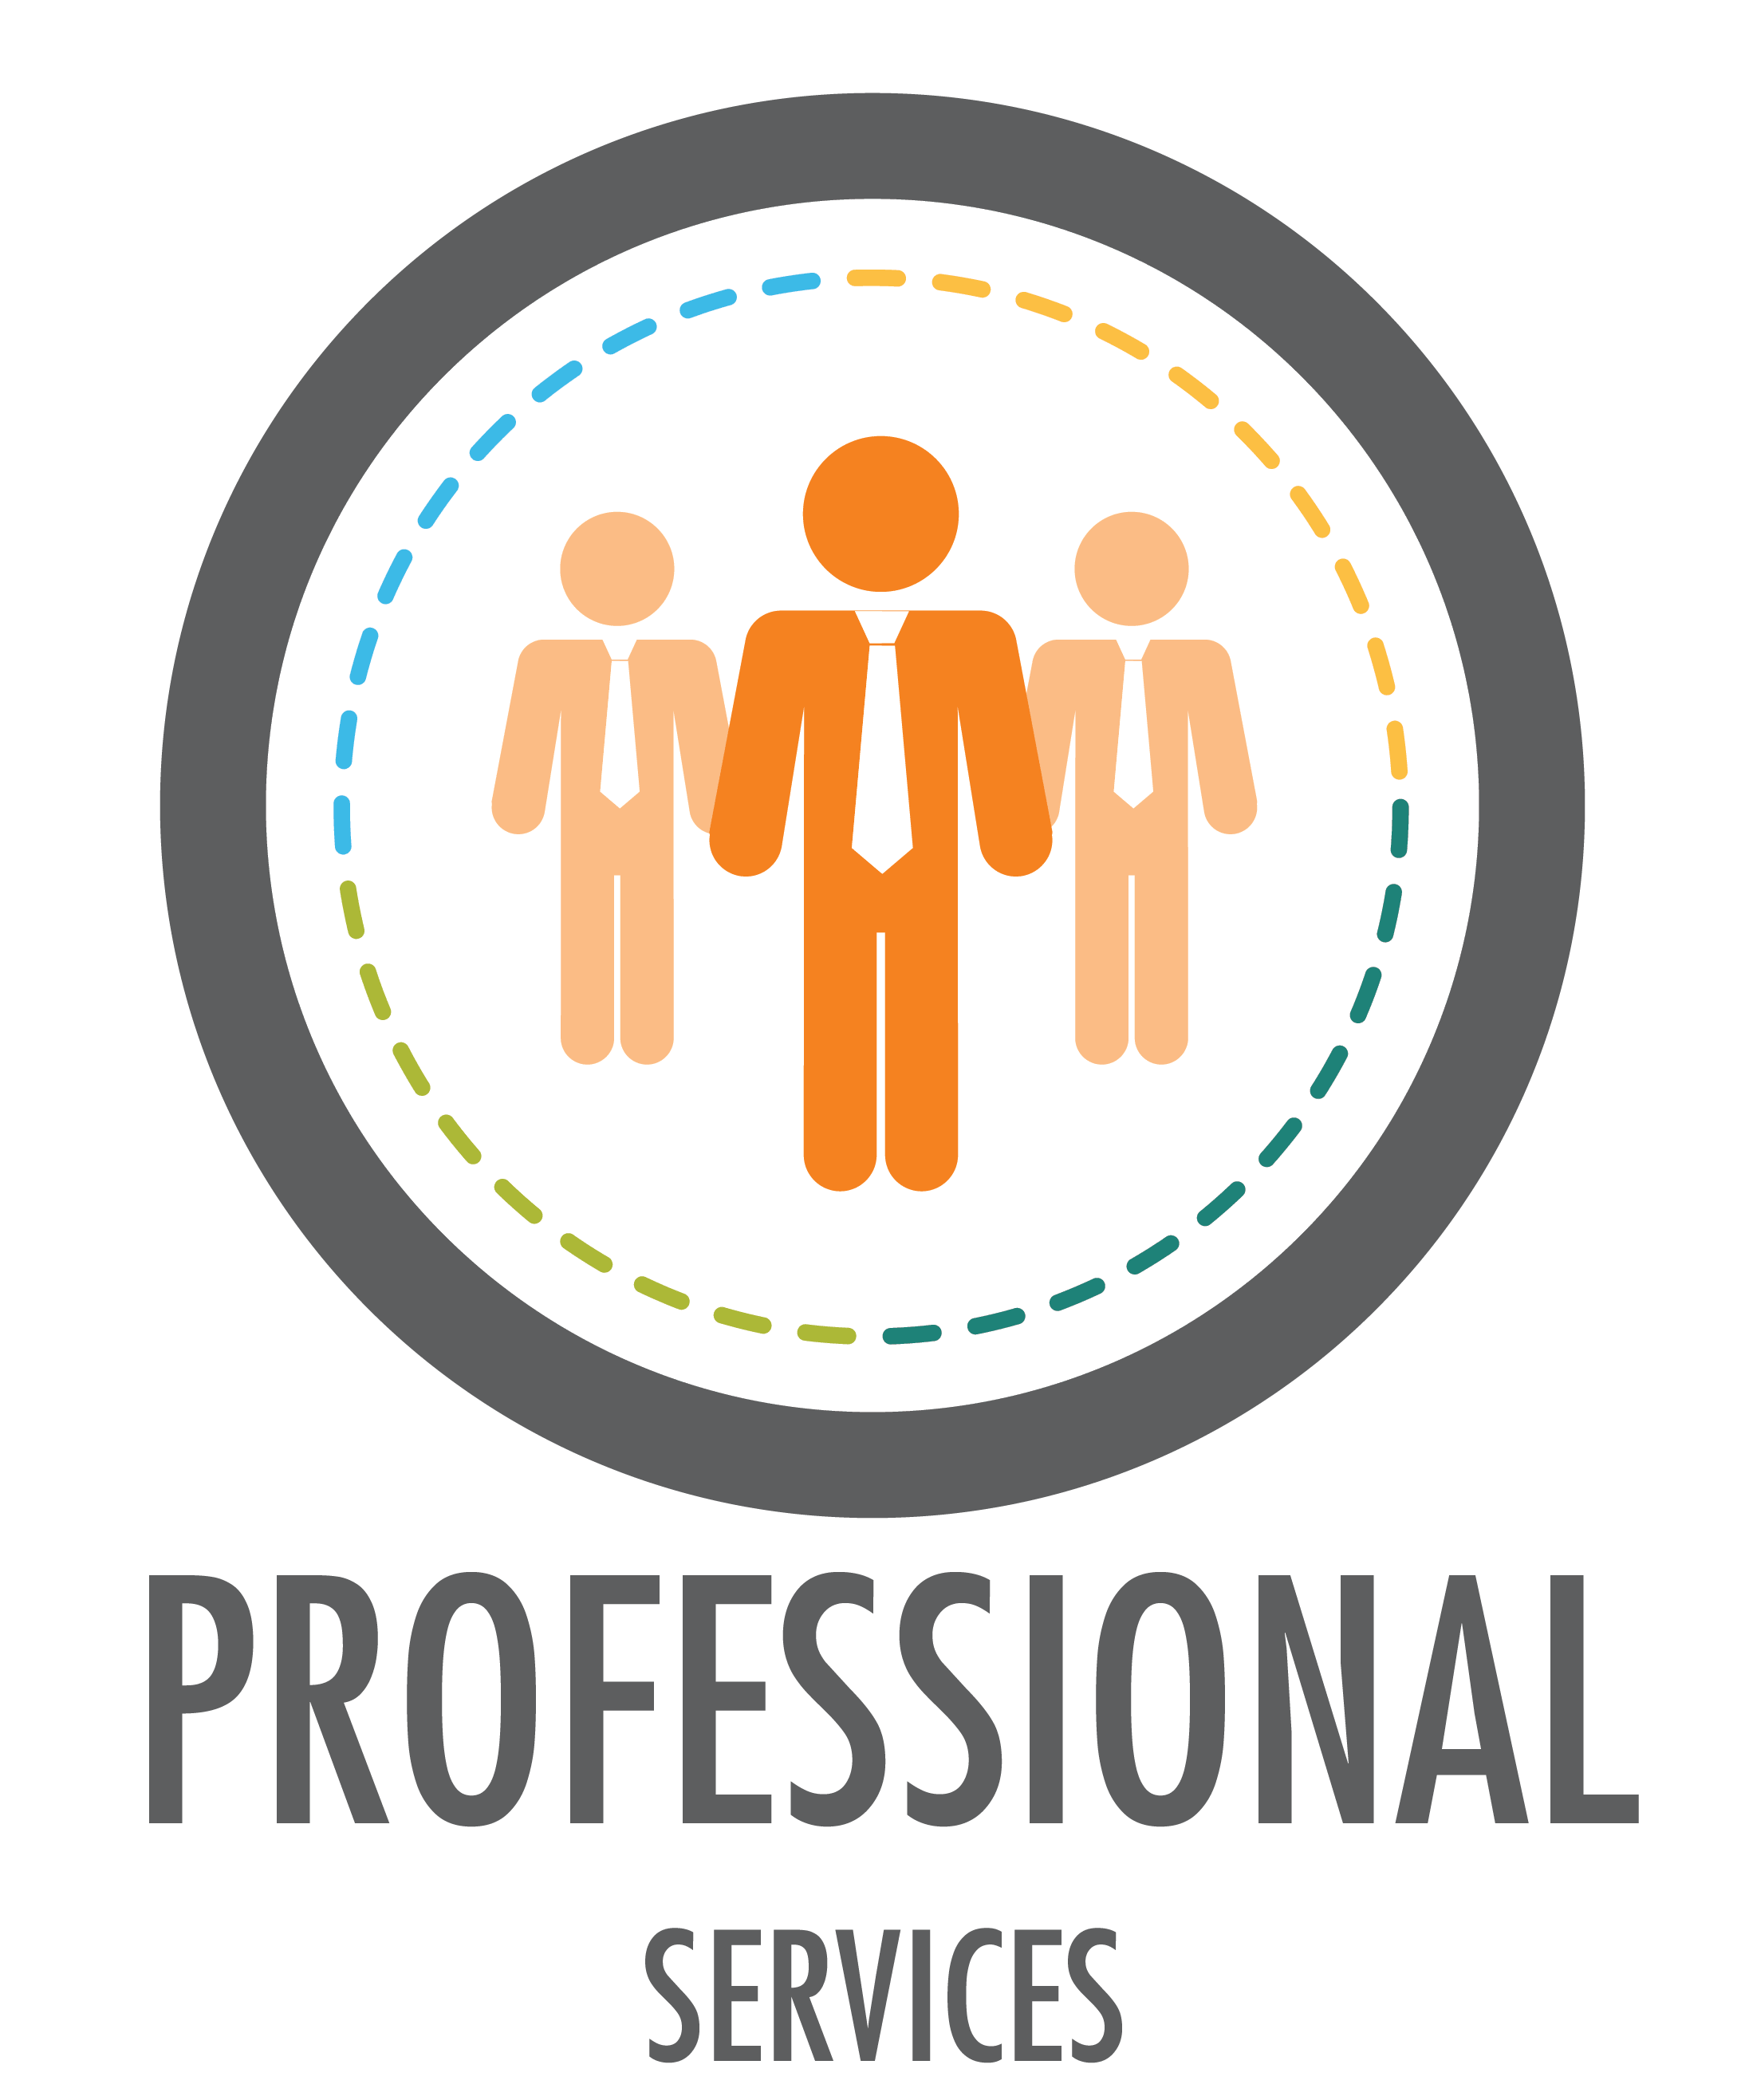 professional services graphic